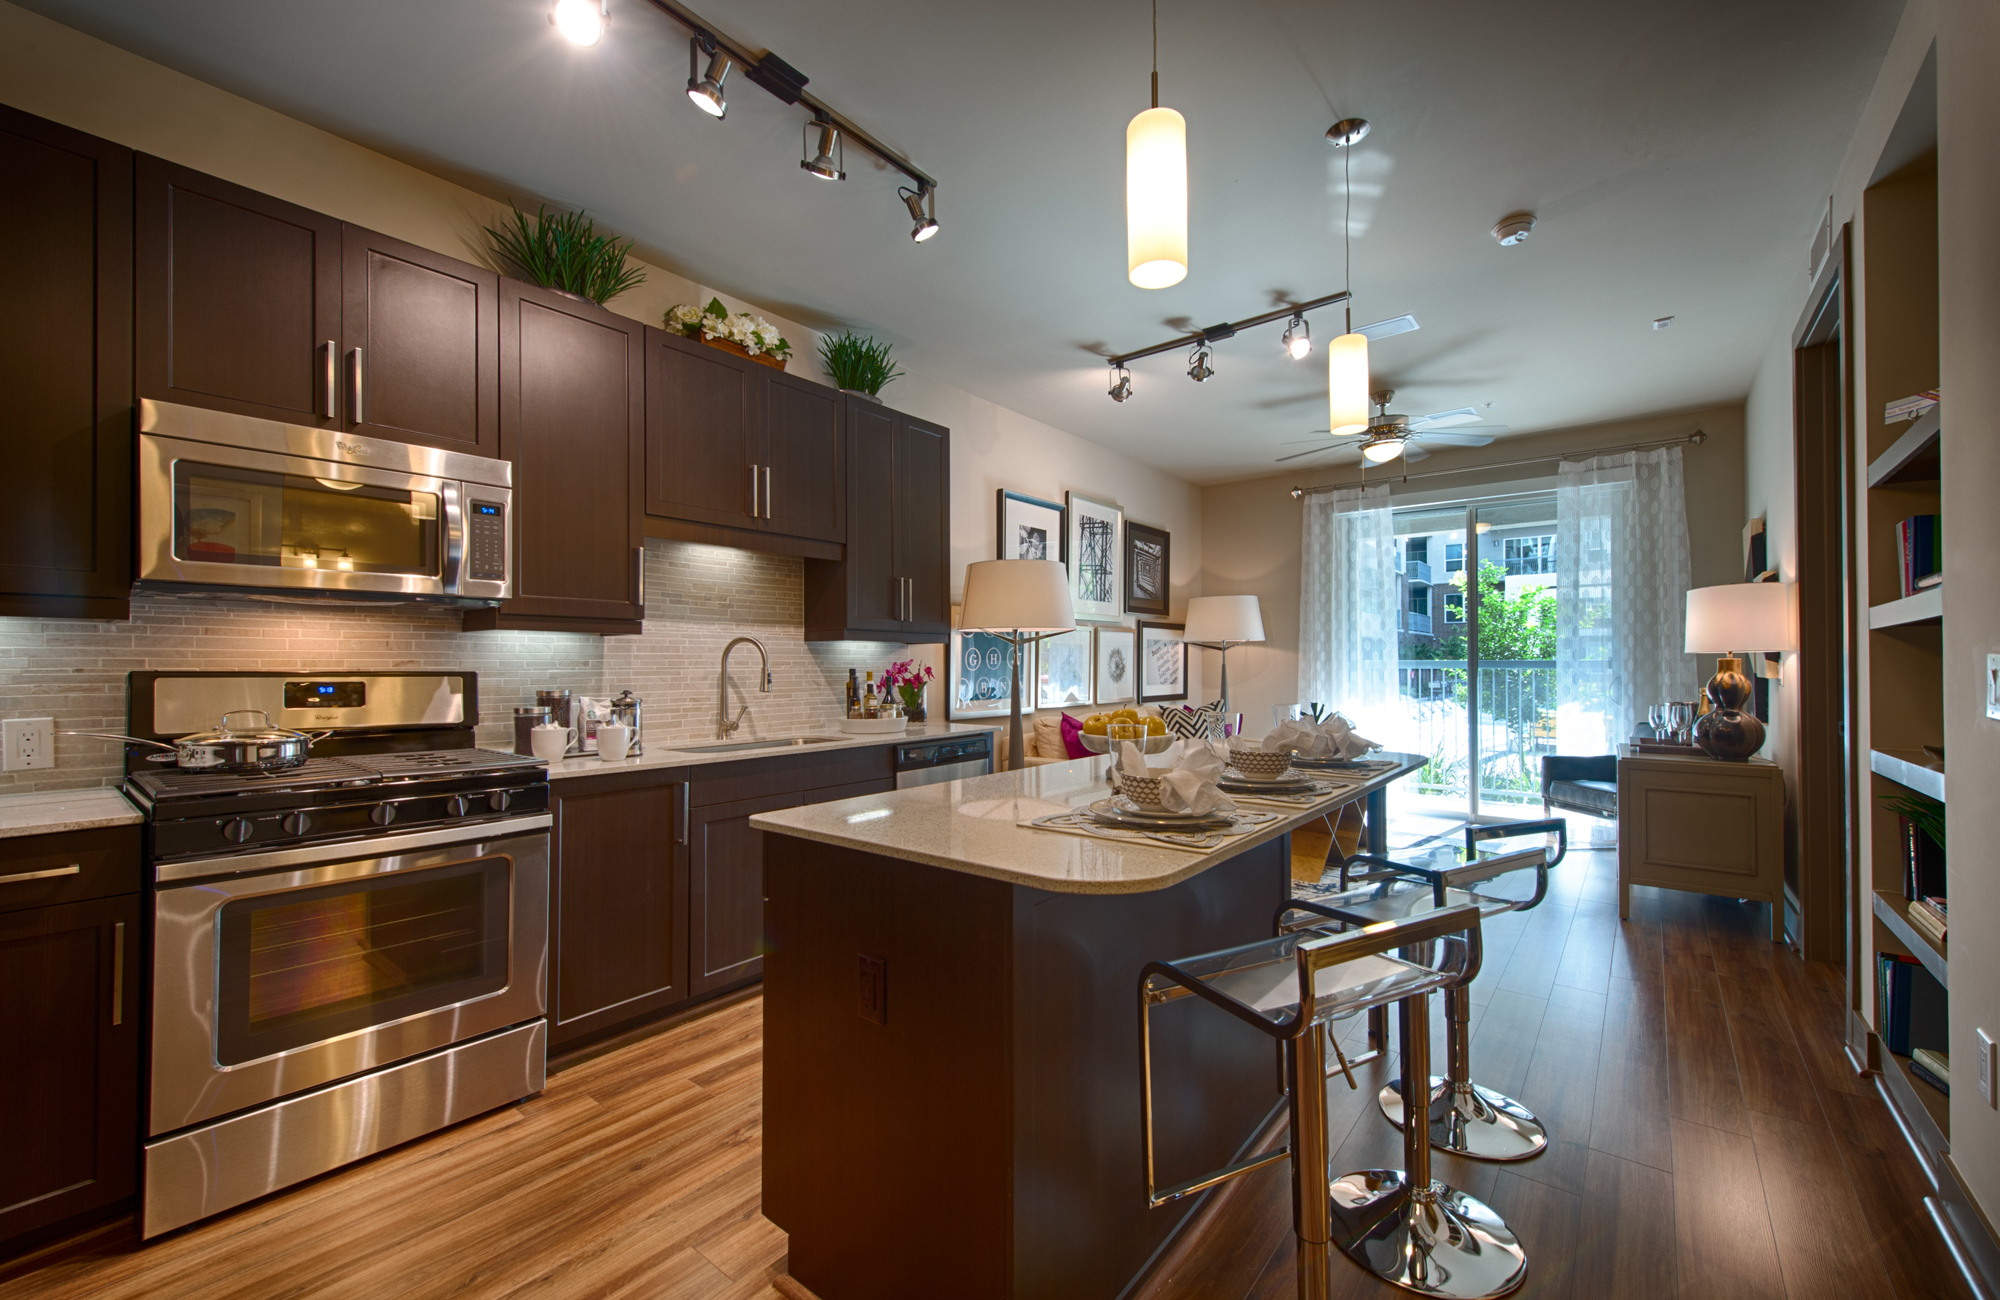 Apartments in CITYCENTRE Houston – Pearl CITYCENTRE North ... on mississippi homes, madison homes, grenada homes, long beach homes, natchez homes, cape town homes, west point homes, meridian homes, hamilton homes, imagine homes,